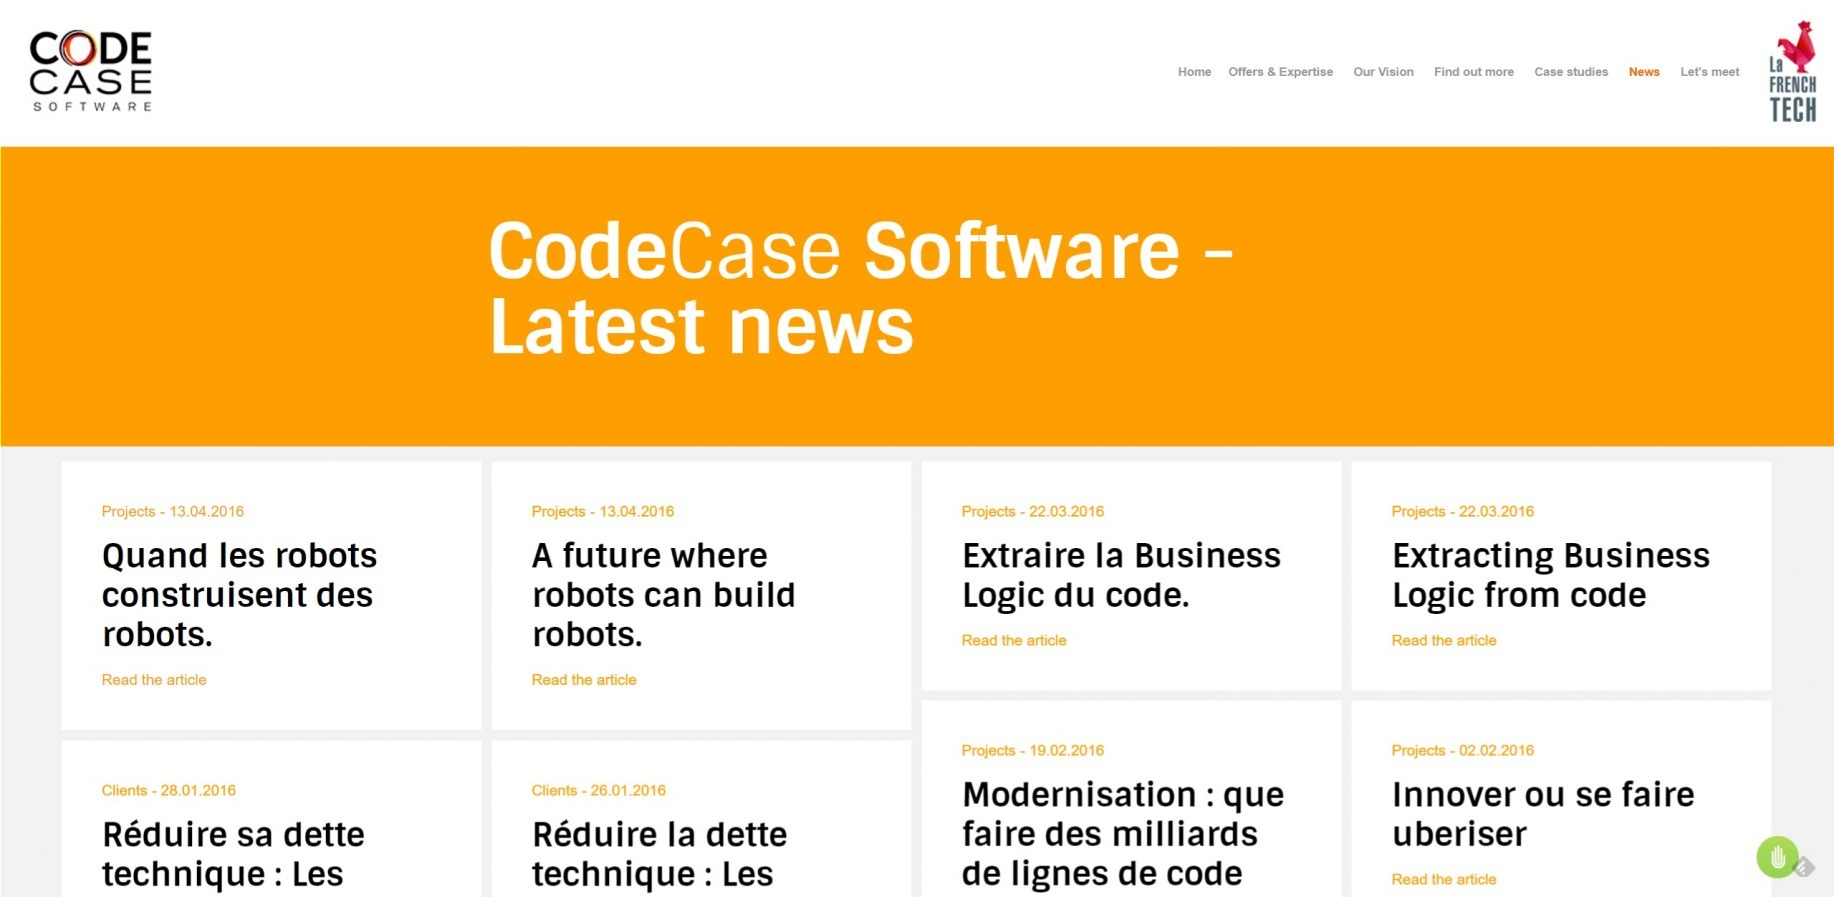 Screenshot codecasesoftware.com 2018.06.22 22 48 09